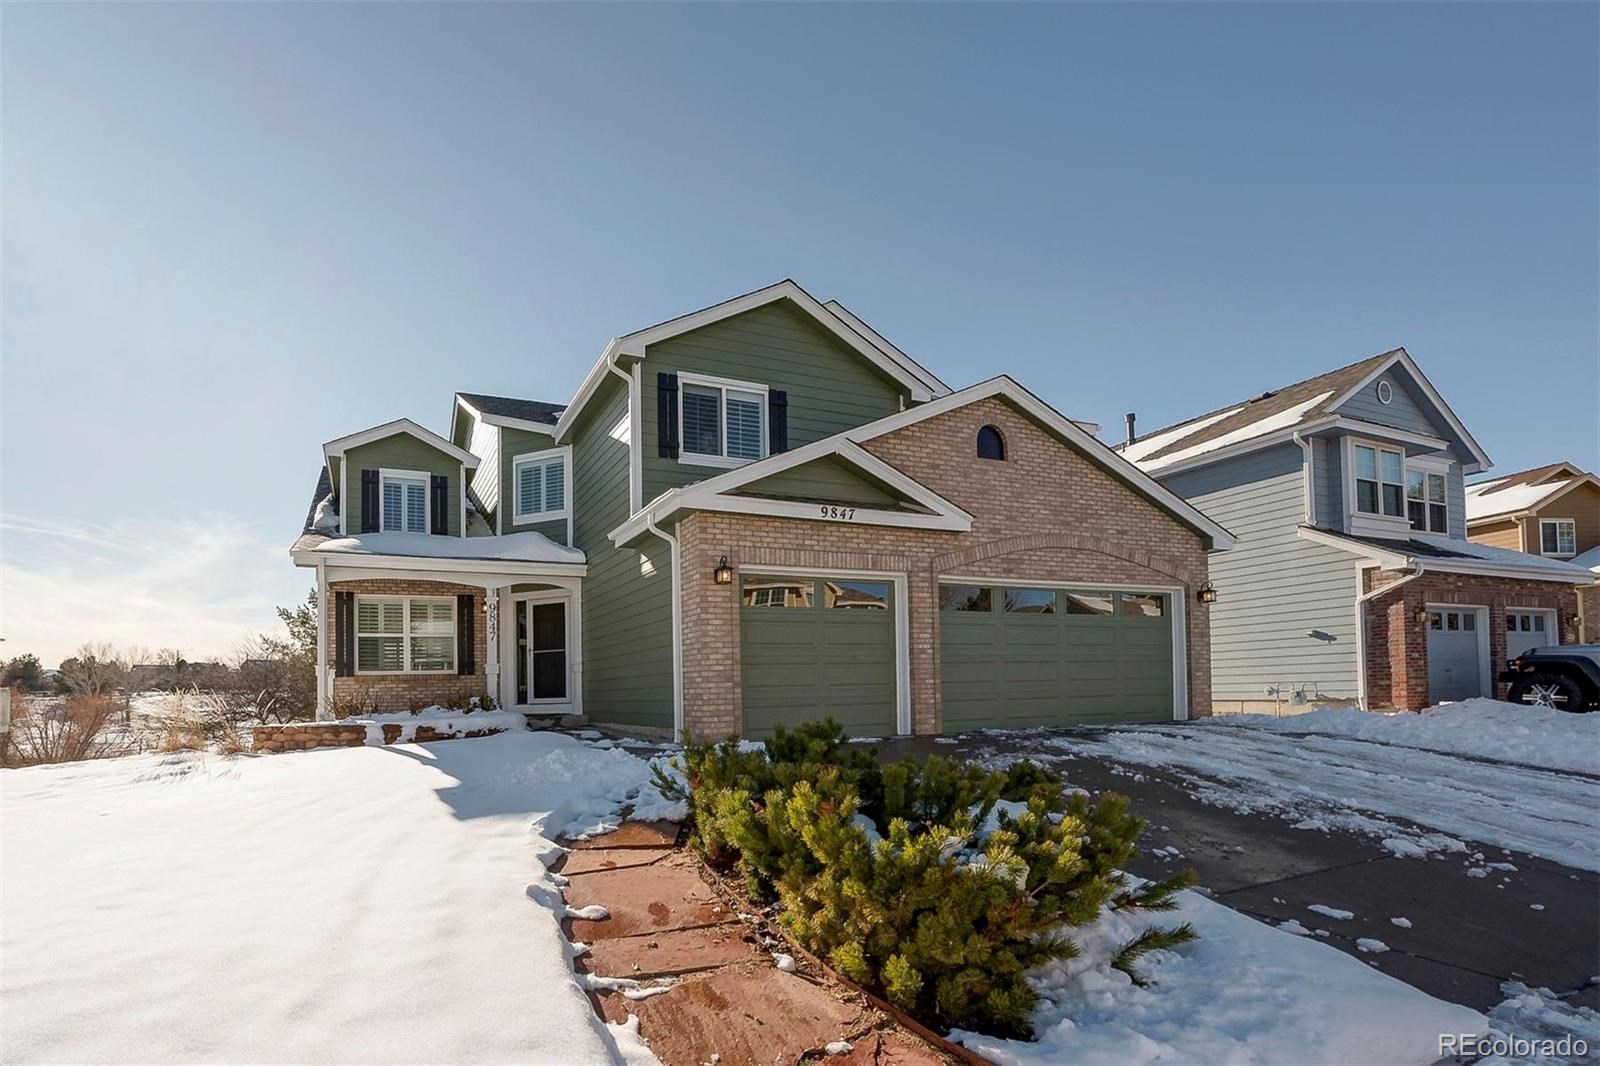 MLS# 8018796 - 9847 Spring Hill Lane, Highlands Ranch, CO 80129